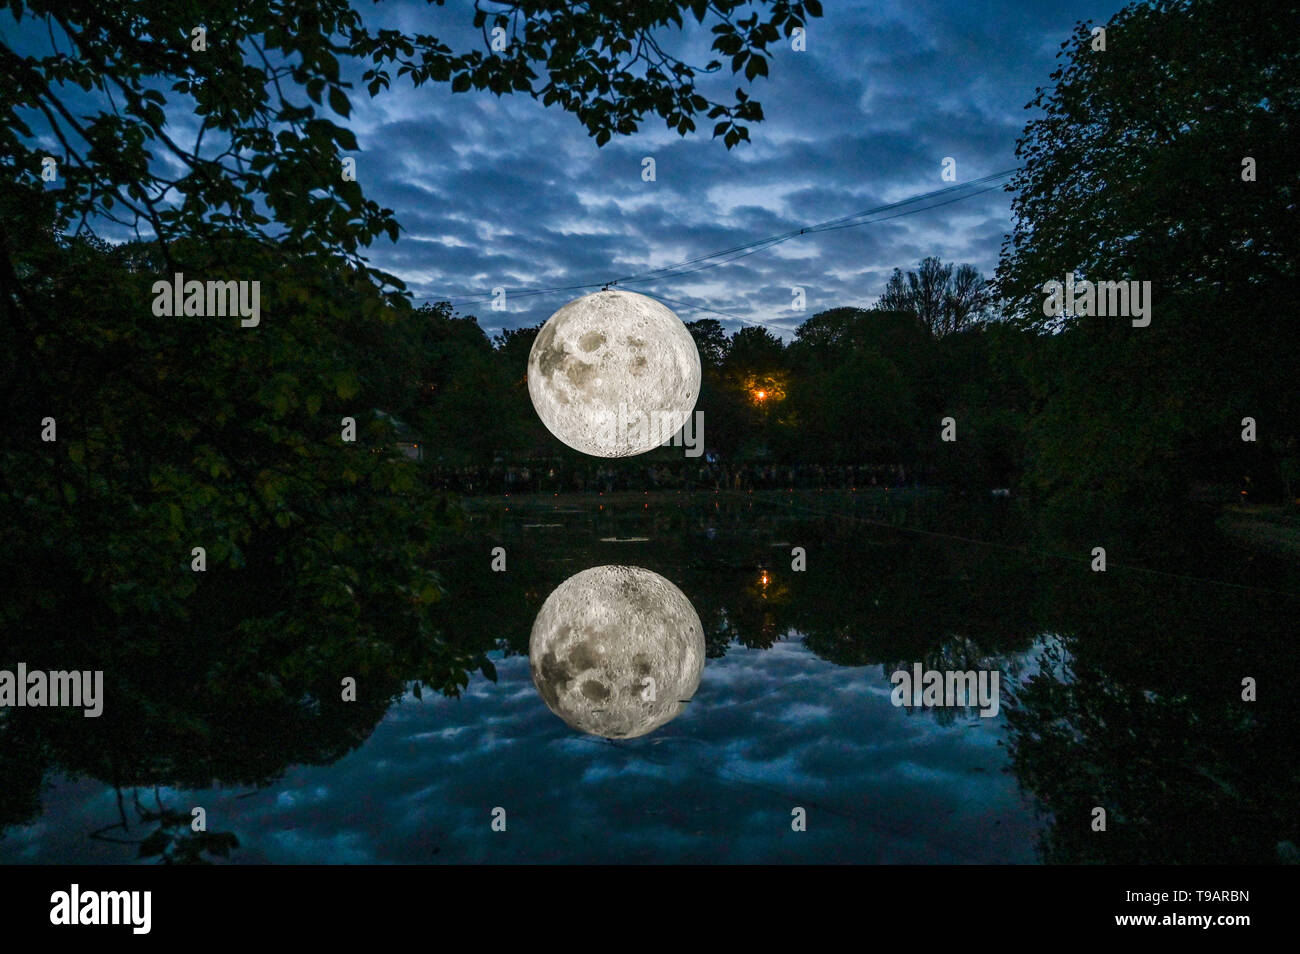 Brighton UK 17th Apr 2019 - Crowds gathered around Queens Park pond in Brighton this evening to watch the Brighton Festival event 'Museum of the Moon' by artist Luke Jerram . The moon will be lit up over the weekend accompanied by music by composer Dan Jones . Credit: Simon Dack / Alamy Live News - Stock Image